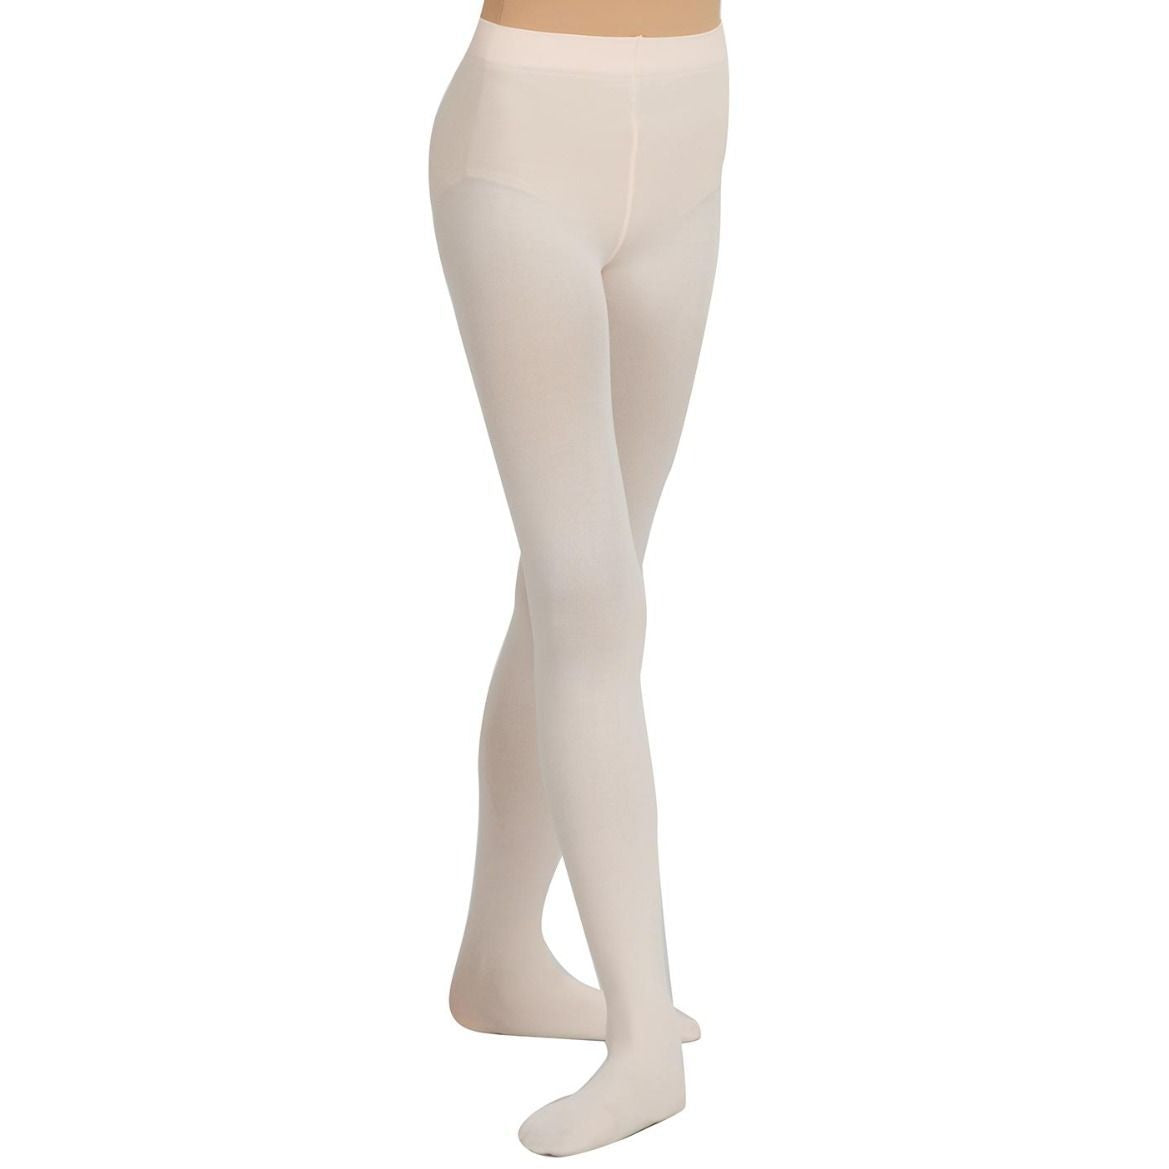 Capezio Children's Ultra Soft Footed Tights 1915X and 1915C